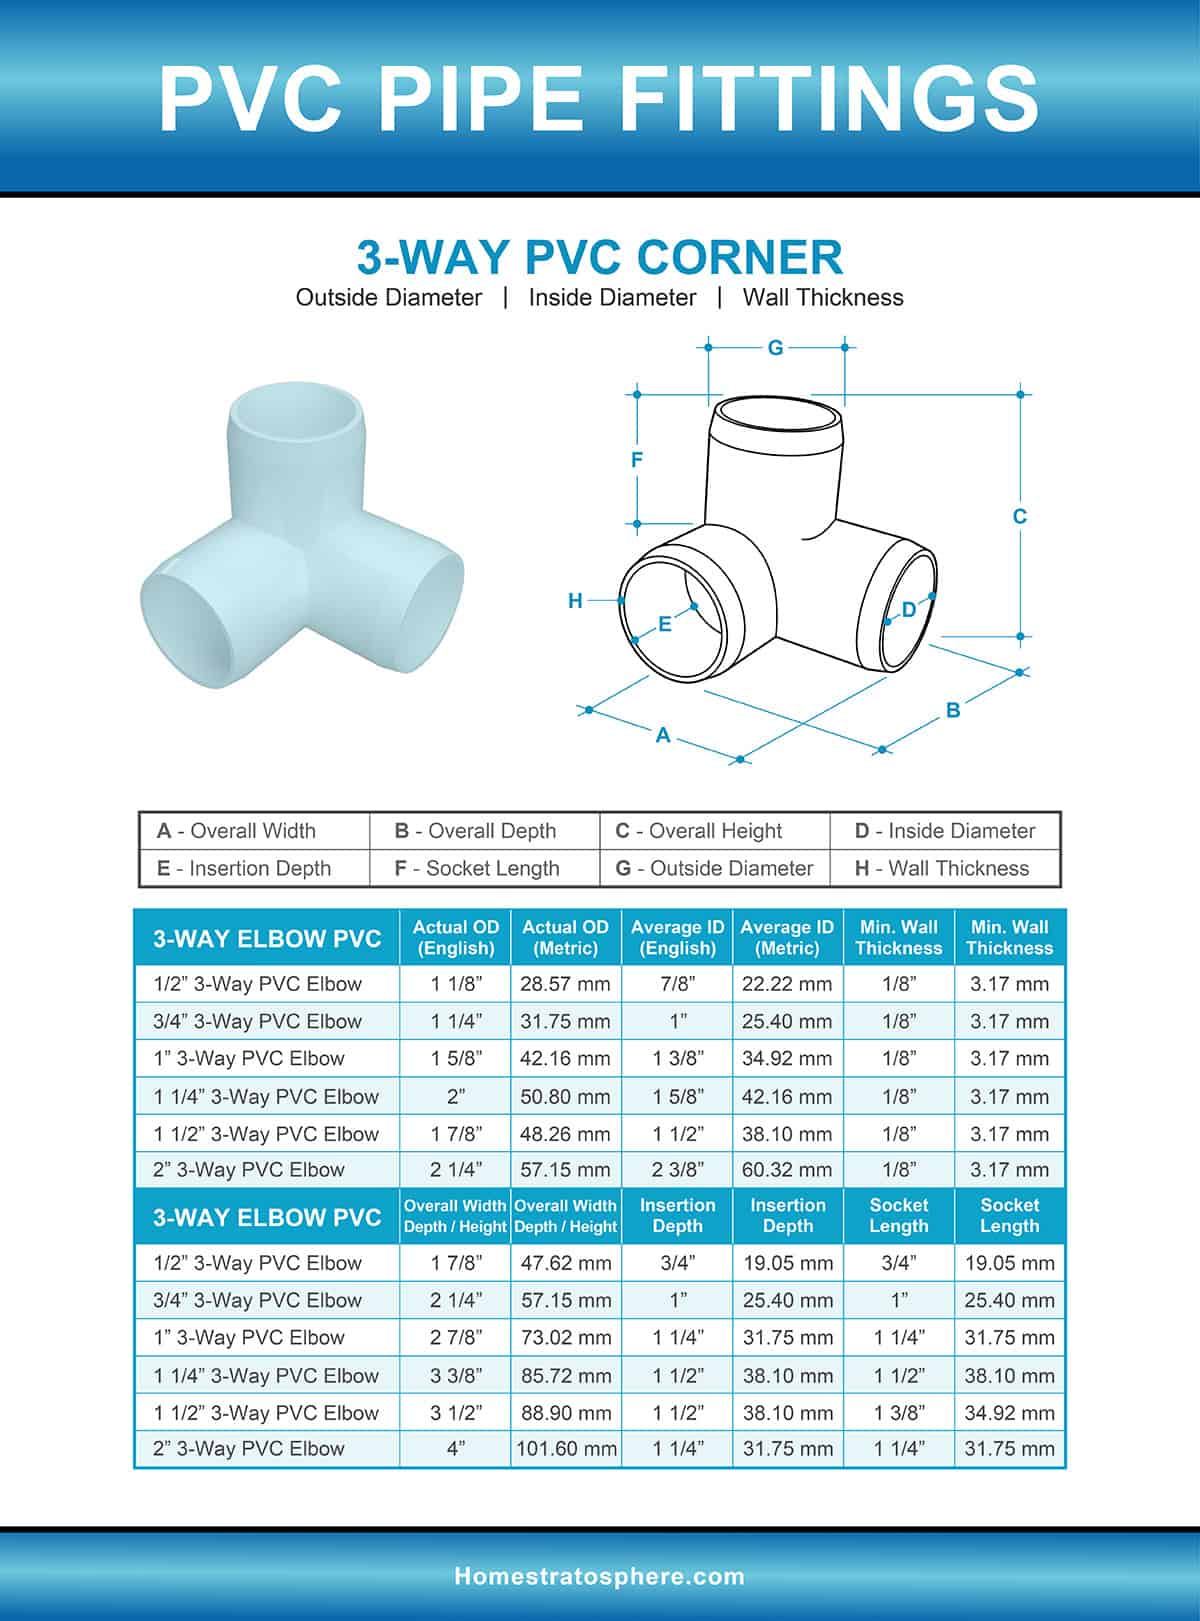 3-Way PVC Corner Fitting Dimensions Illustration and Chart